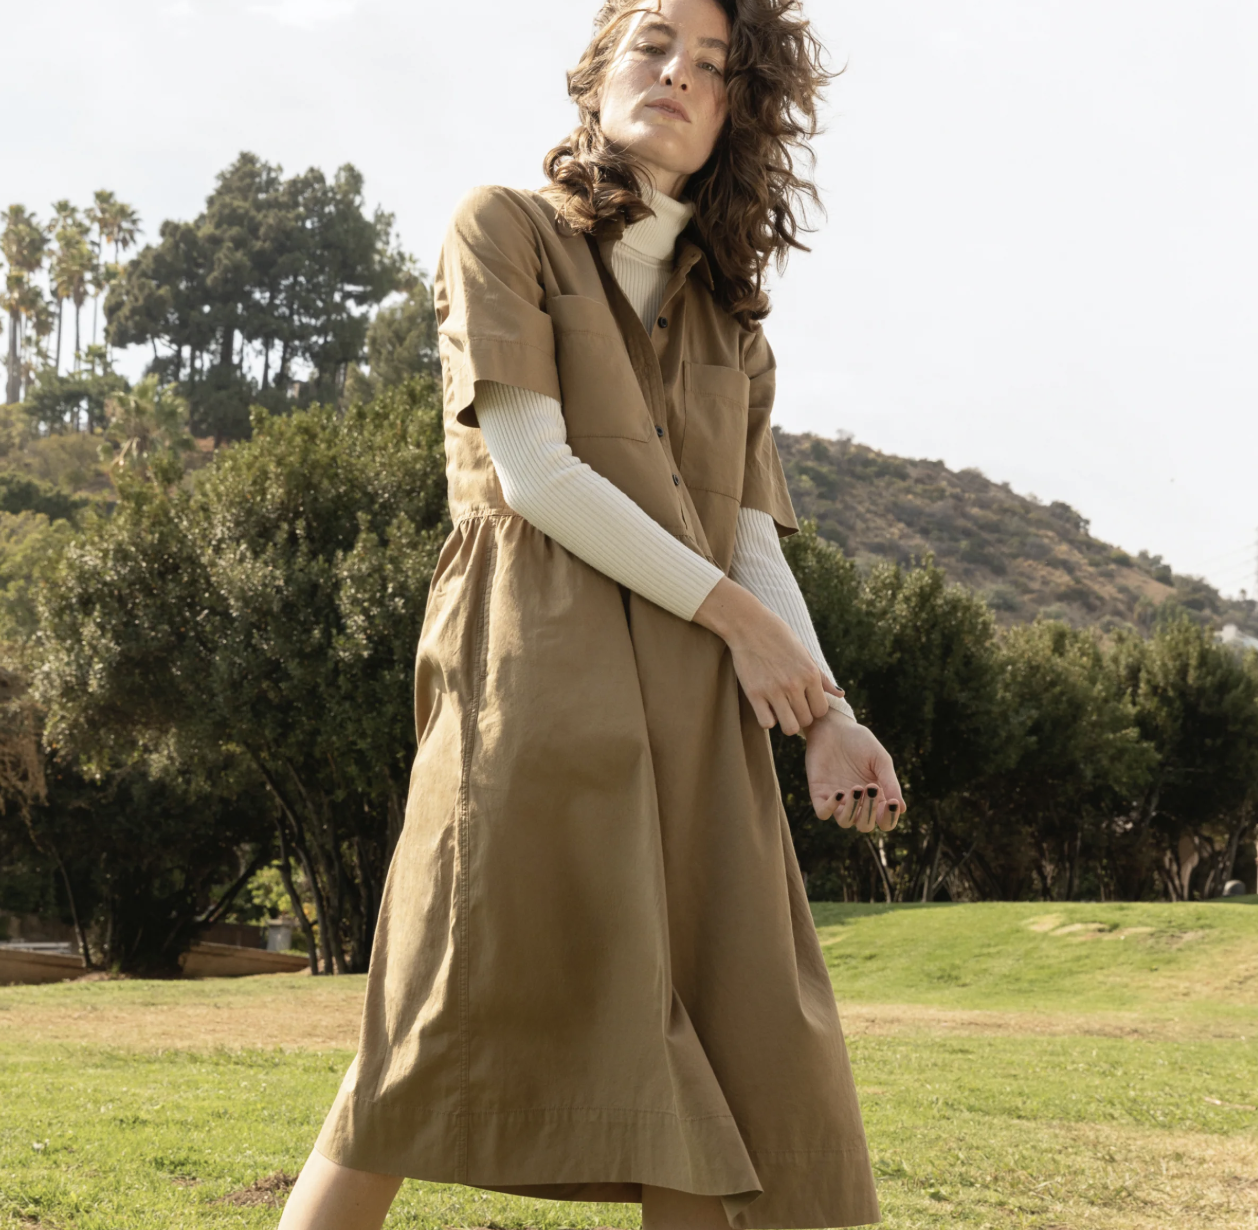 A model in a khaki short-sleeved button down dress with front pockets on the chest